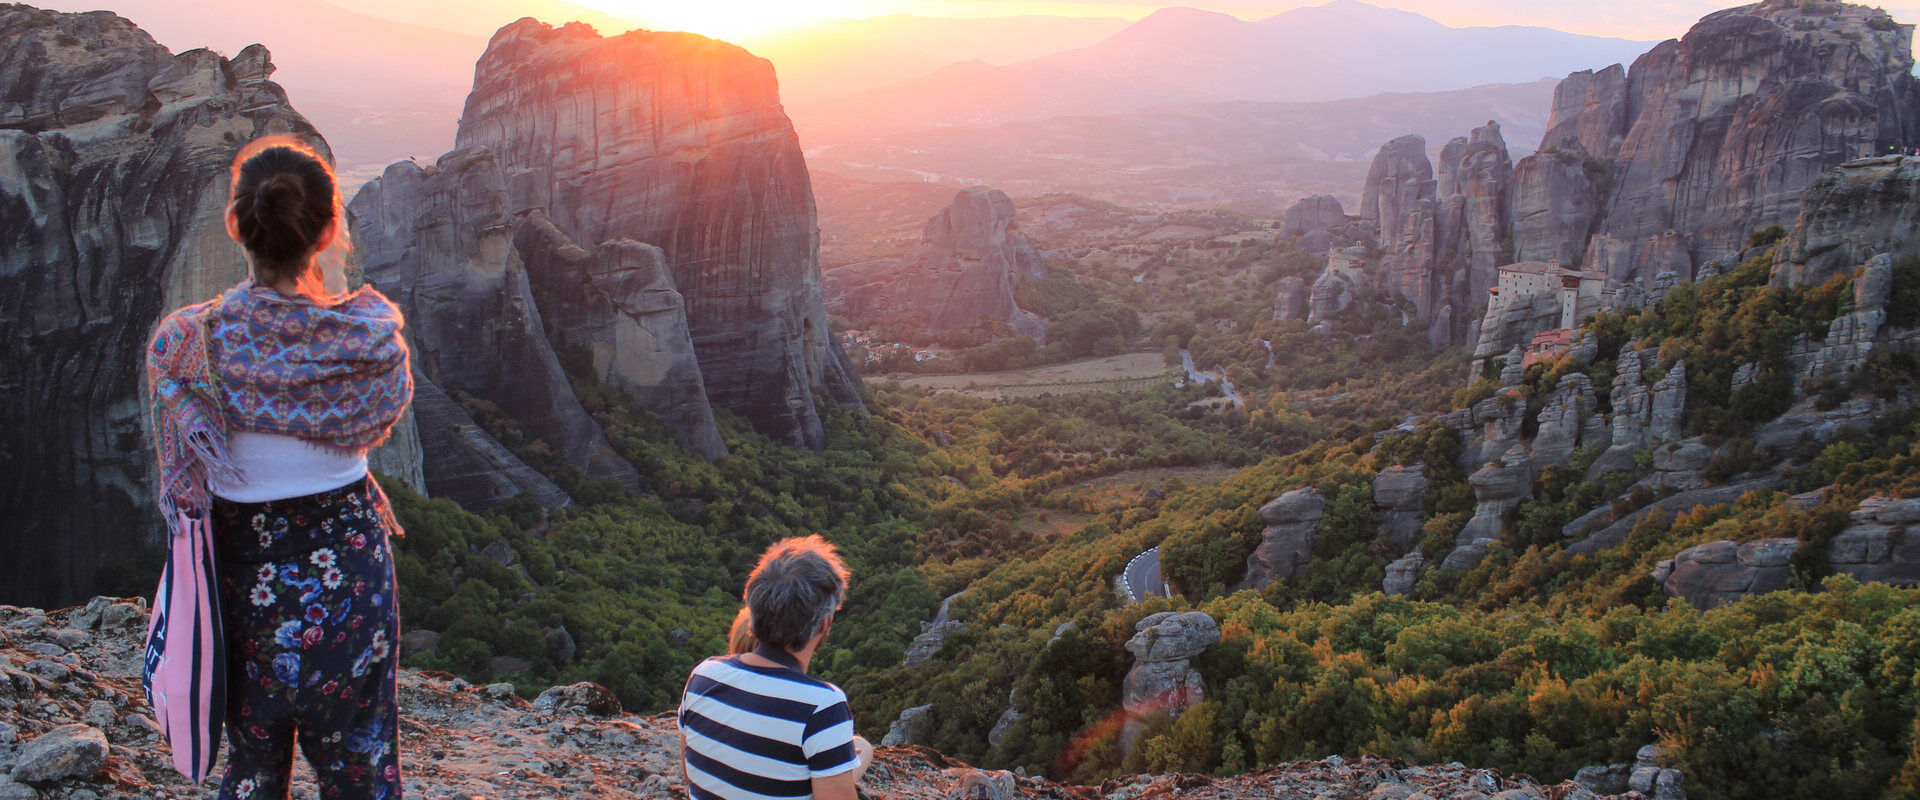 Sunset from Above, Meteora, Greece